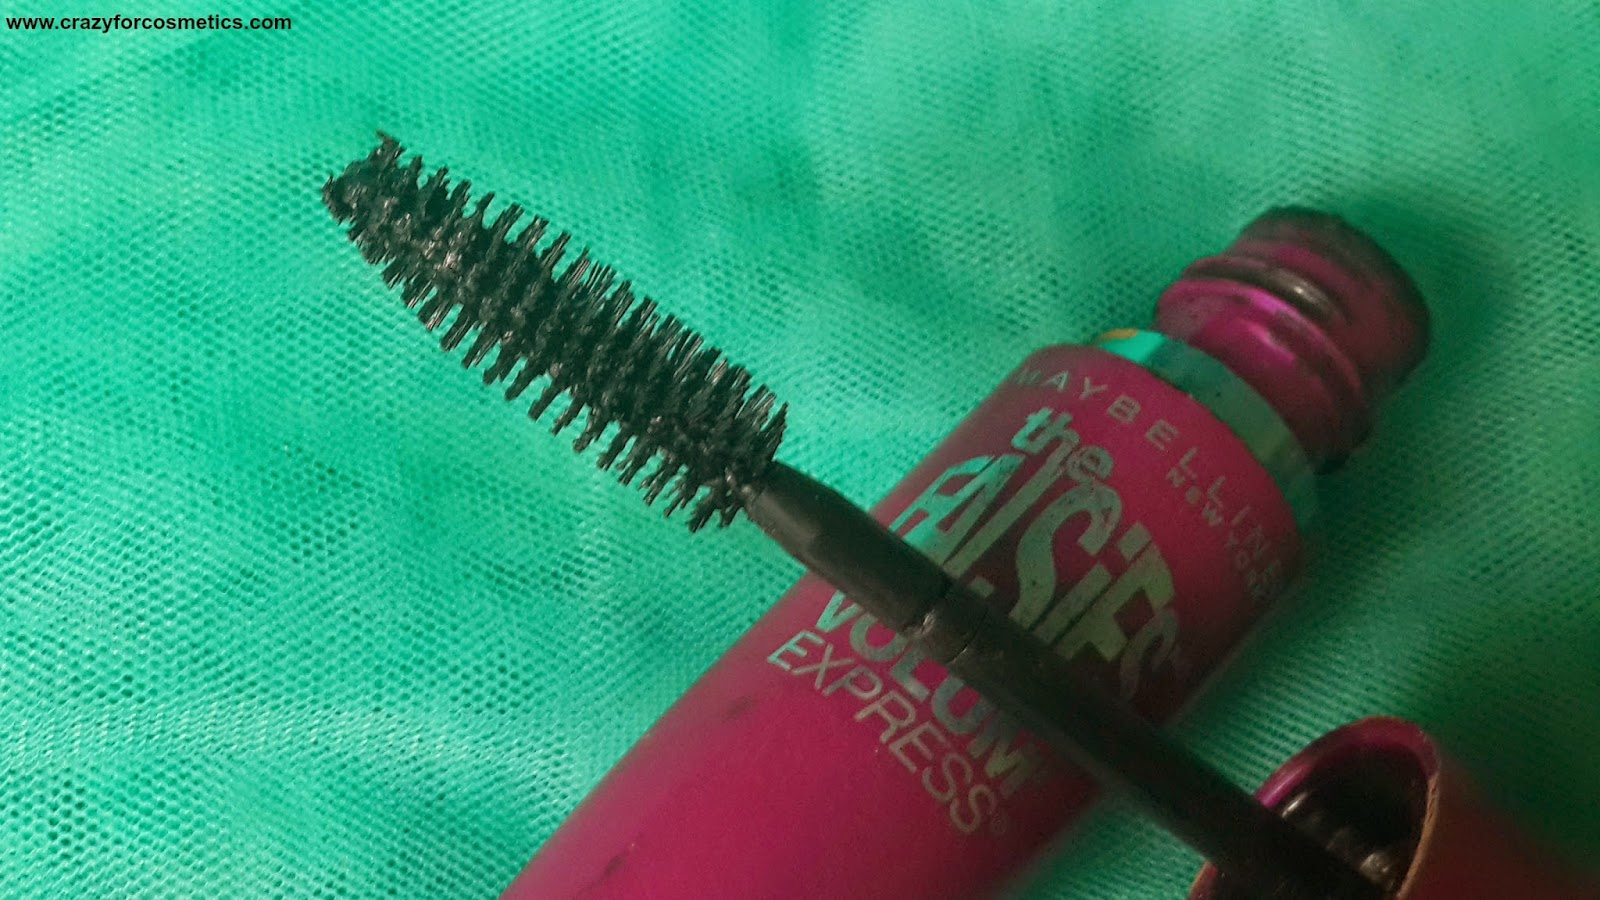 maybelline colossal mascara-maybelline colossal mascara review india- maybelline colossal mascara price in india- maybelline colossal vs falsies- maybelline colossal mascara waterproof- maybelline colossal mascara online,maybelline colossal mascara price in india,maybelline falsies mascara review- maybelline falsies mascara review in India-maybelline falsies mascara review-maybelline falsies mascara review india-maybelline falsies mascara review price in india